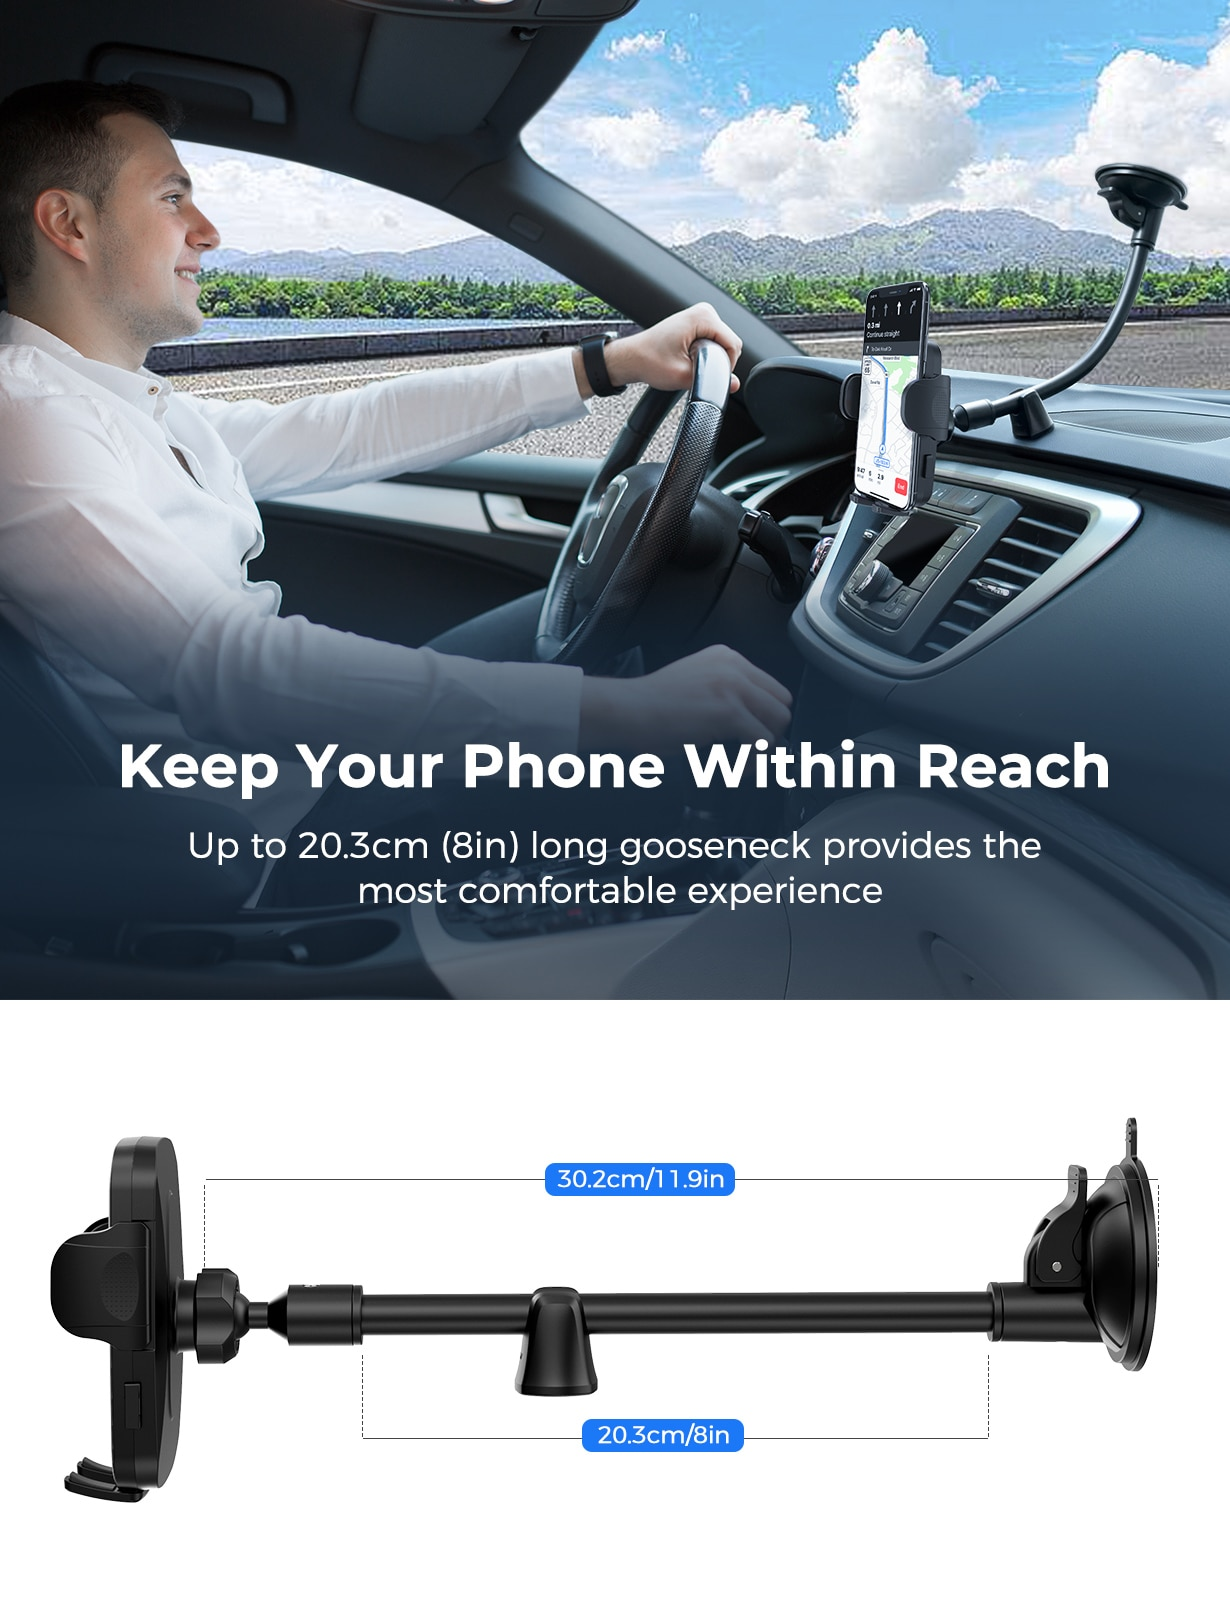 H4506ae0ea4734057a7c5e18e27740980D - MPOW CA159 Upgraded Long Gooseneck Phone Holder for Car Windshield Car Phone Mount for iPhone SE 11 Pro Galaxy Note and More